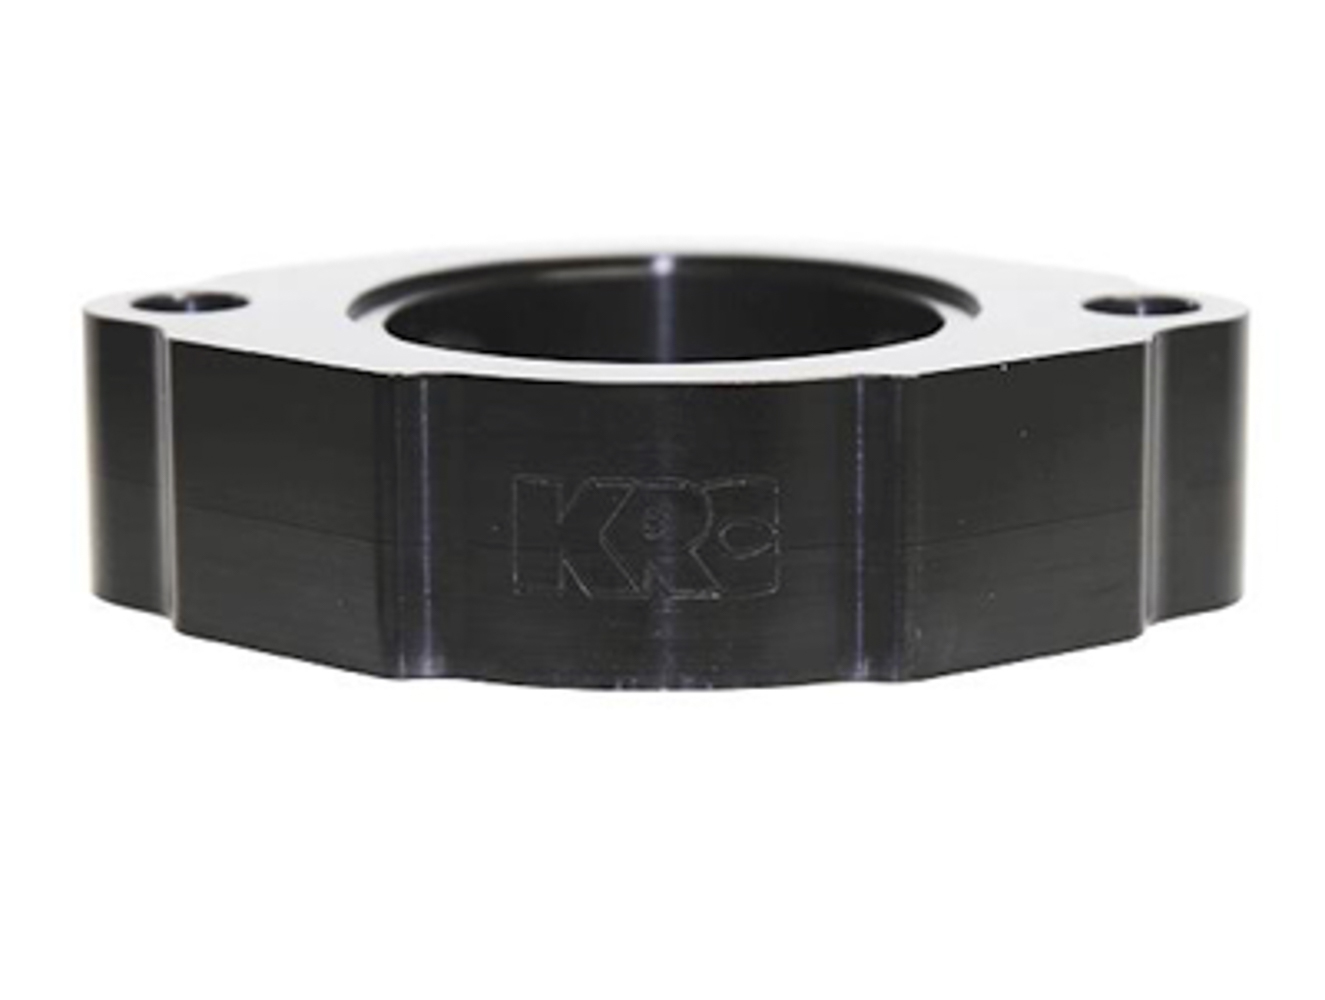 Krc Power Steering Spacer Thermostat 1in Aluminum